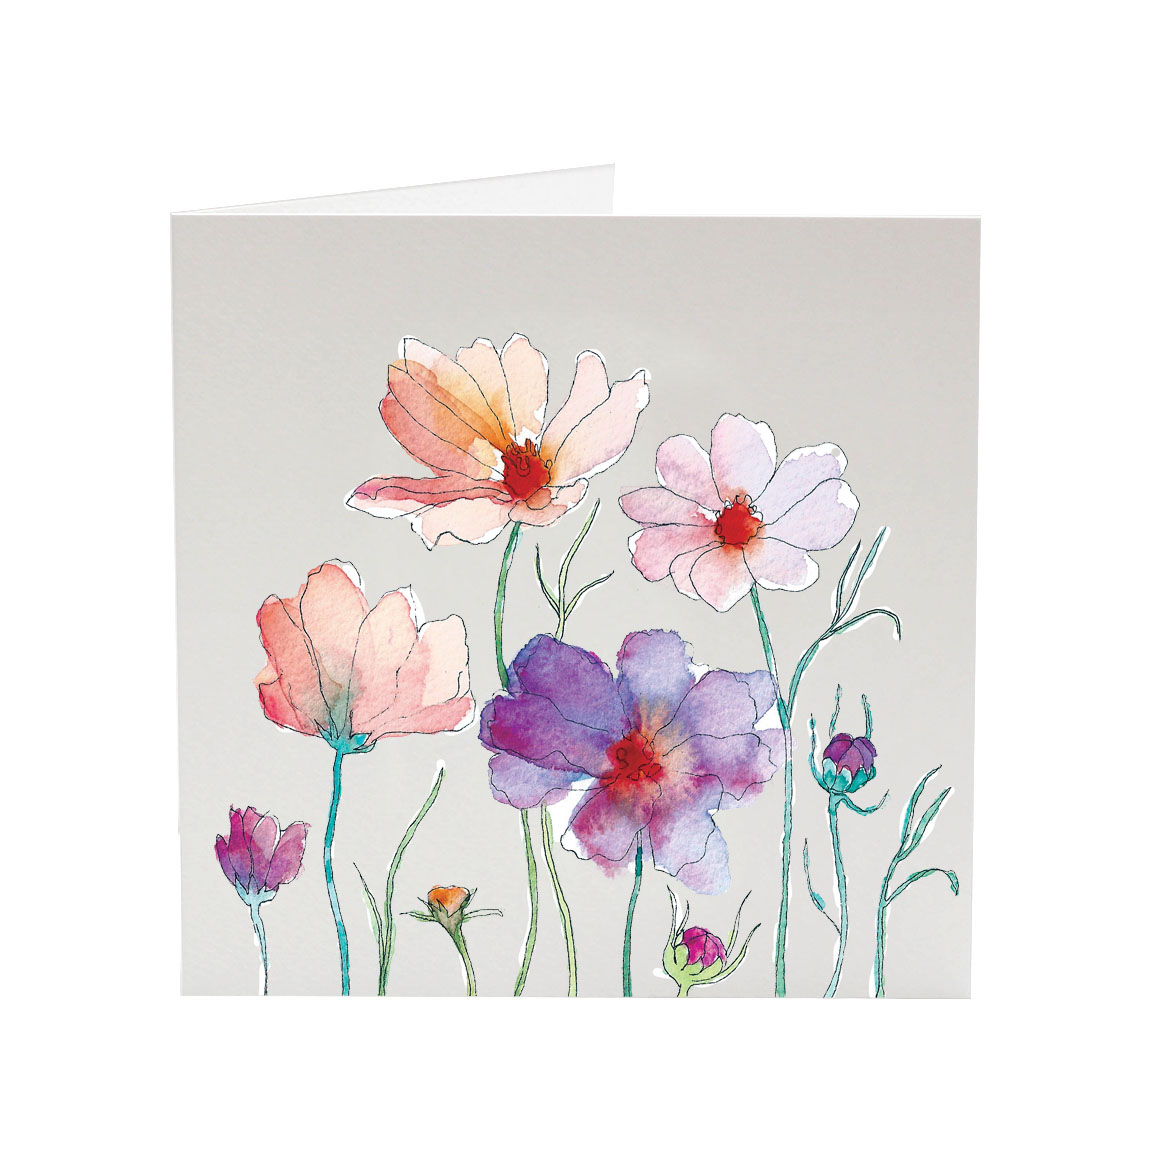 my favourite flower cosmos for monica greeting card  sj